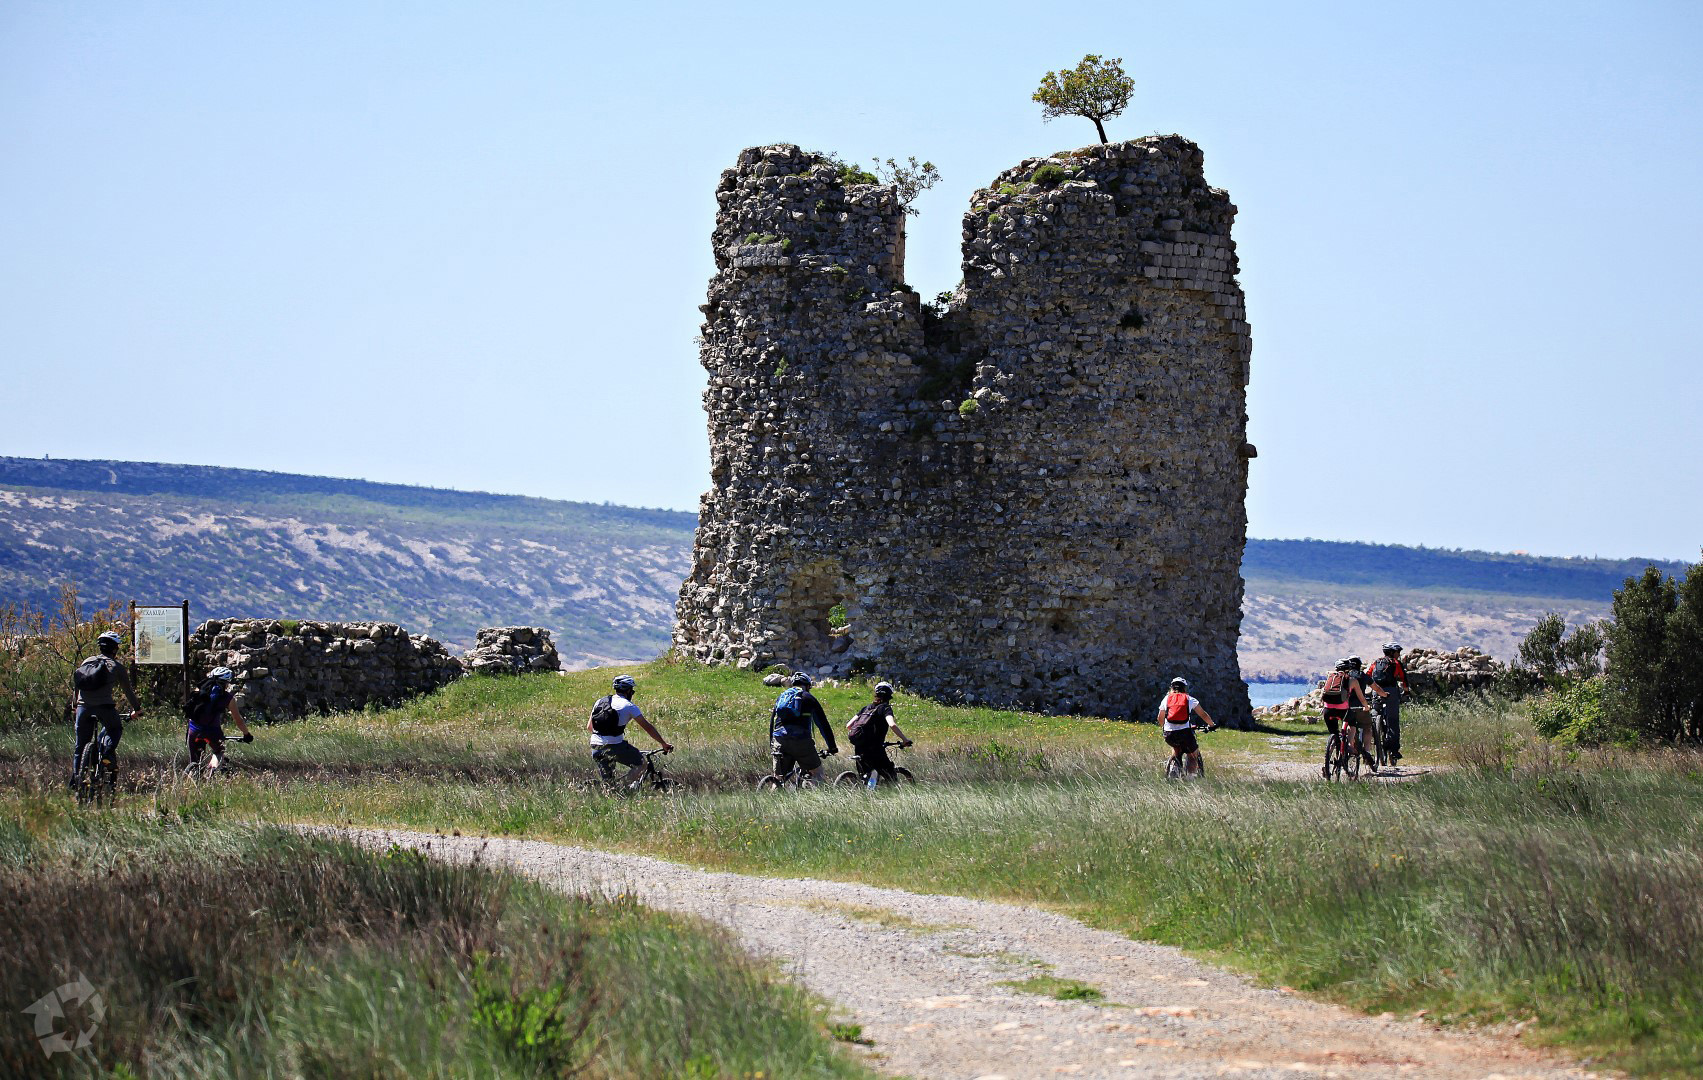 Old stone tower on a pebble beach by the sea - Večka kula